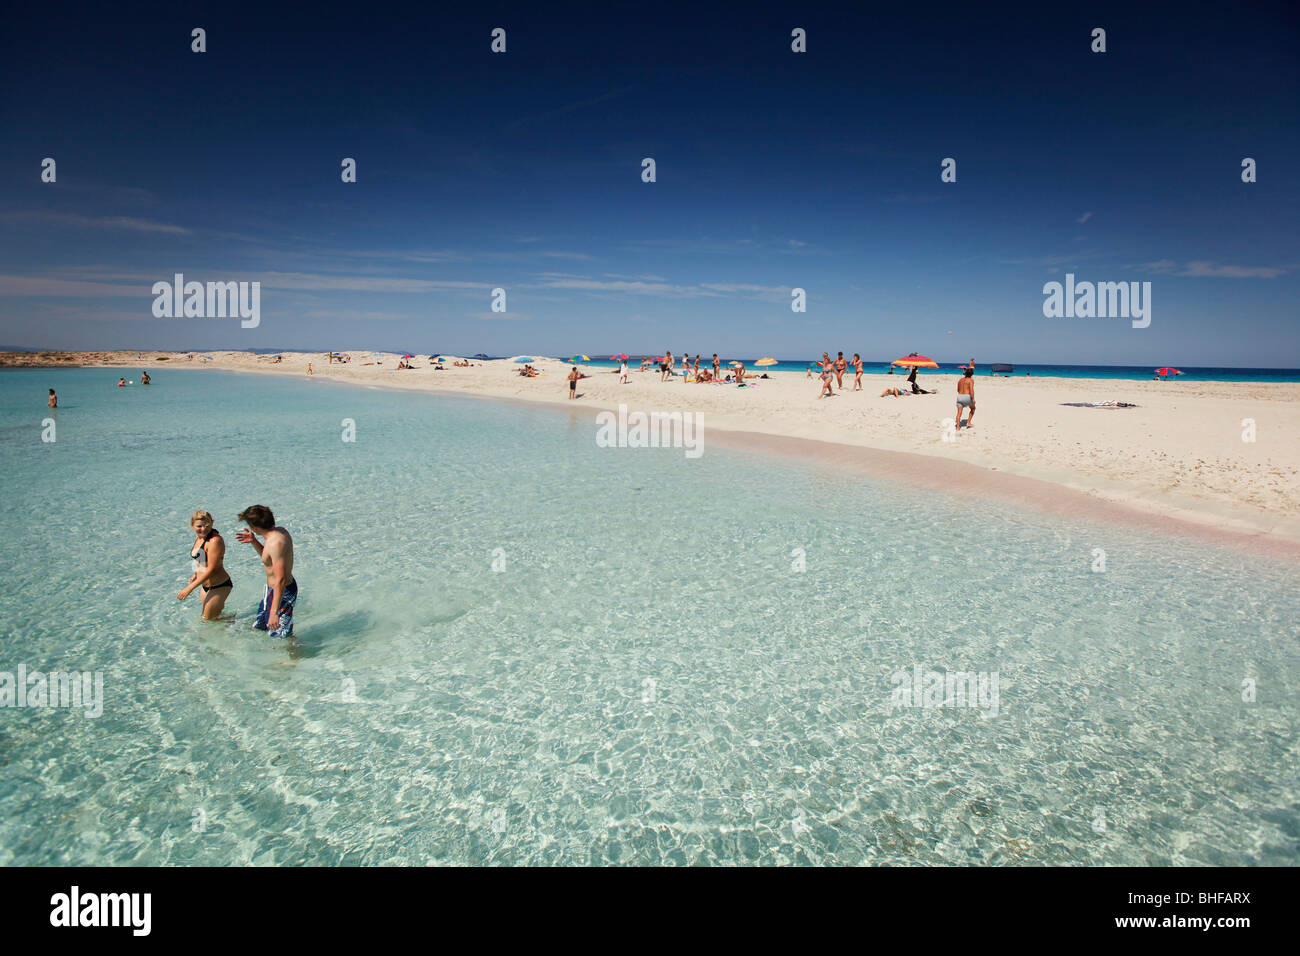 Les Illetes beach, Formentera, Balearic Islands, Spain - Stock Image